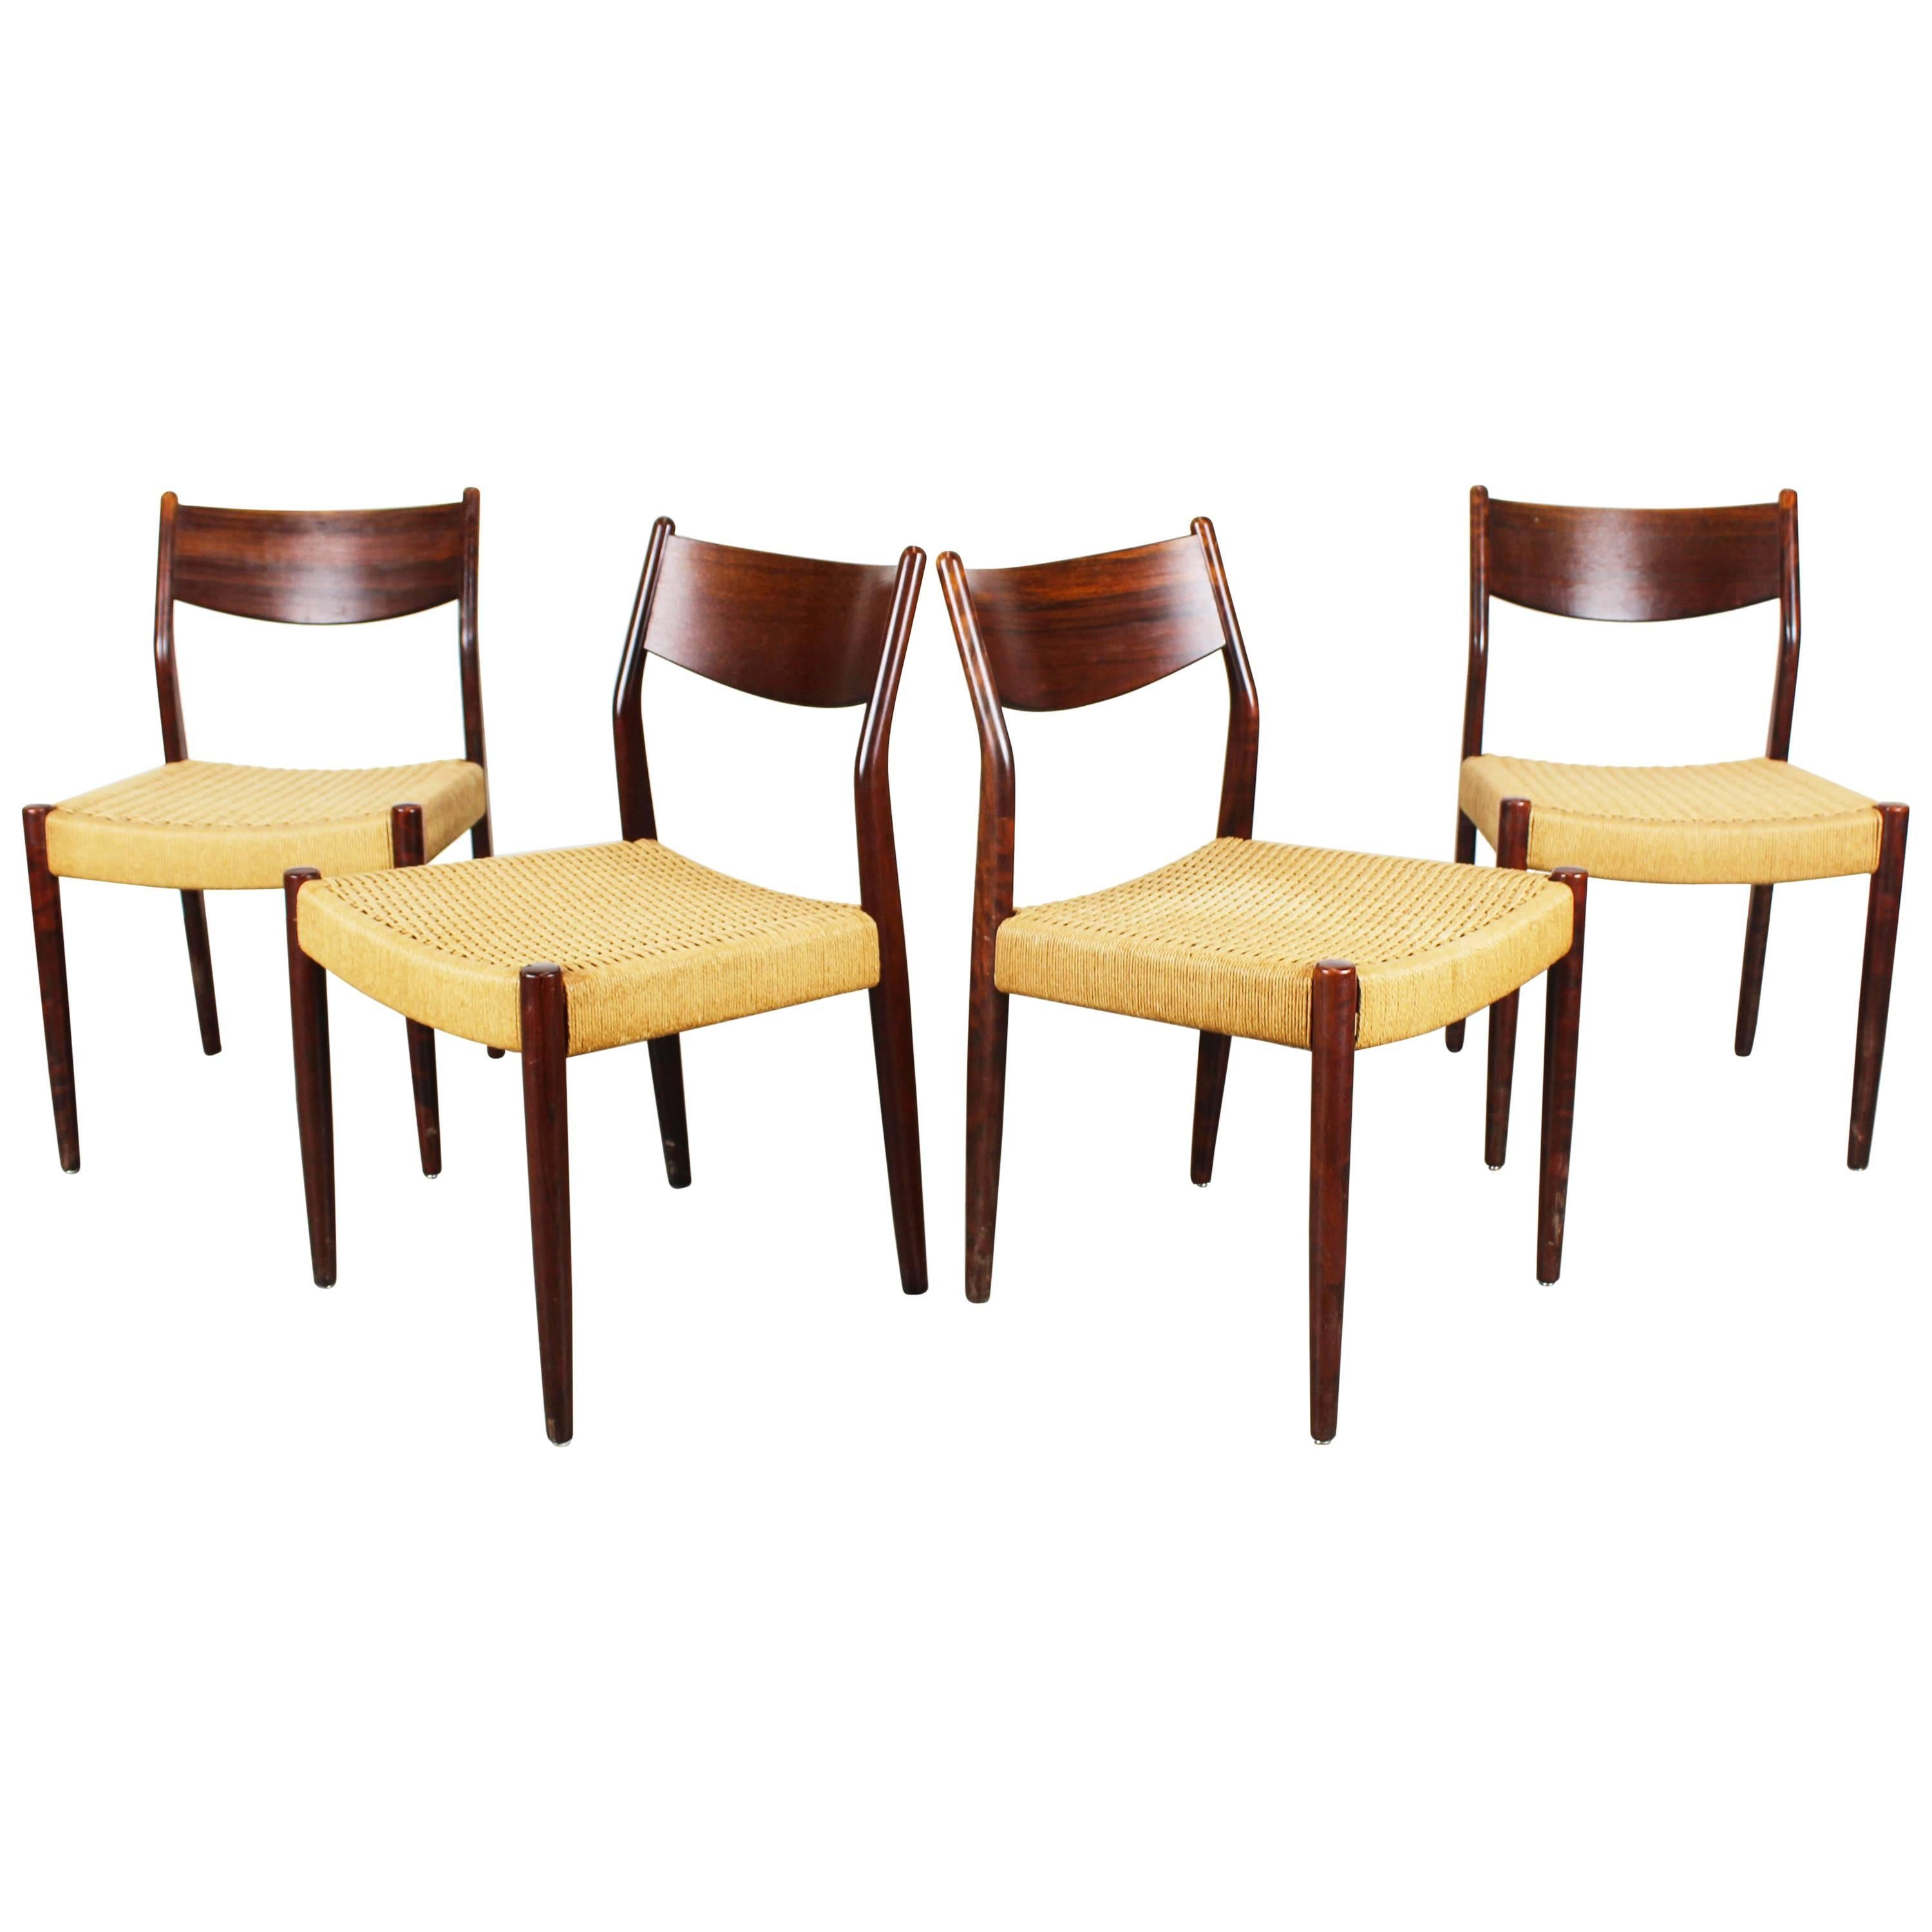 set of four dutch dining chairs in rosewood and papercord by pastoe brown beige 1